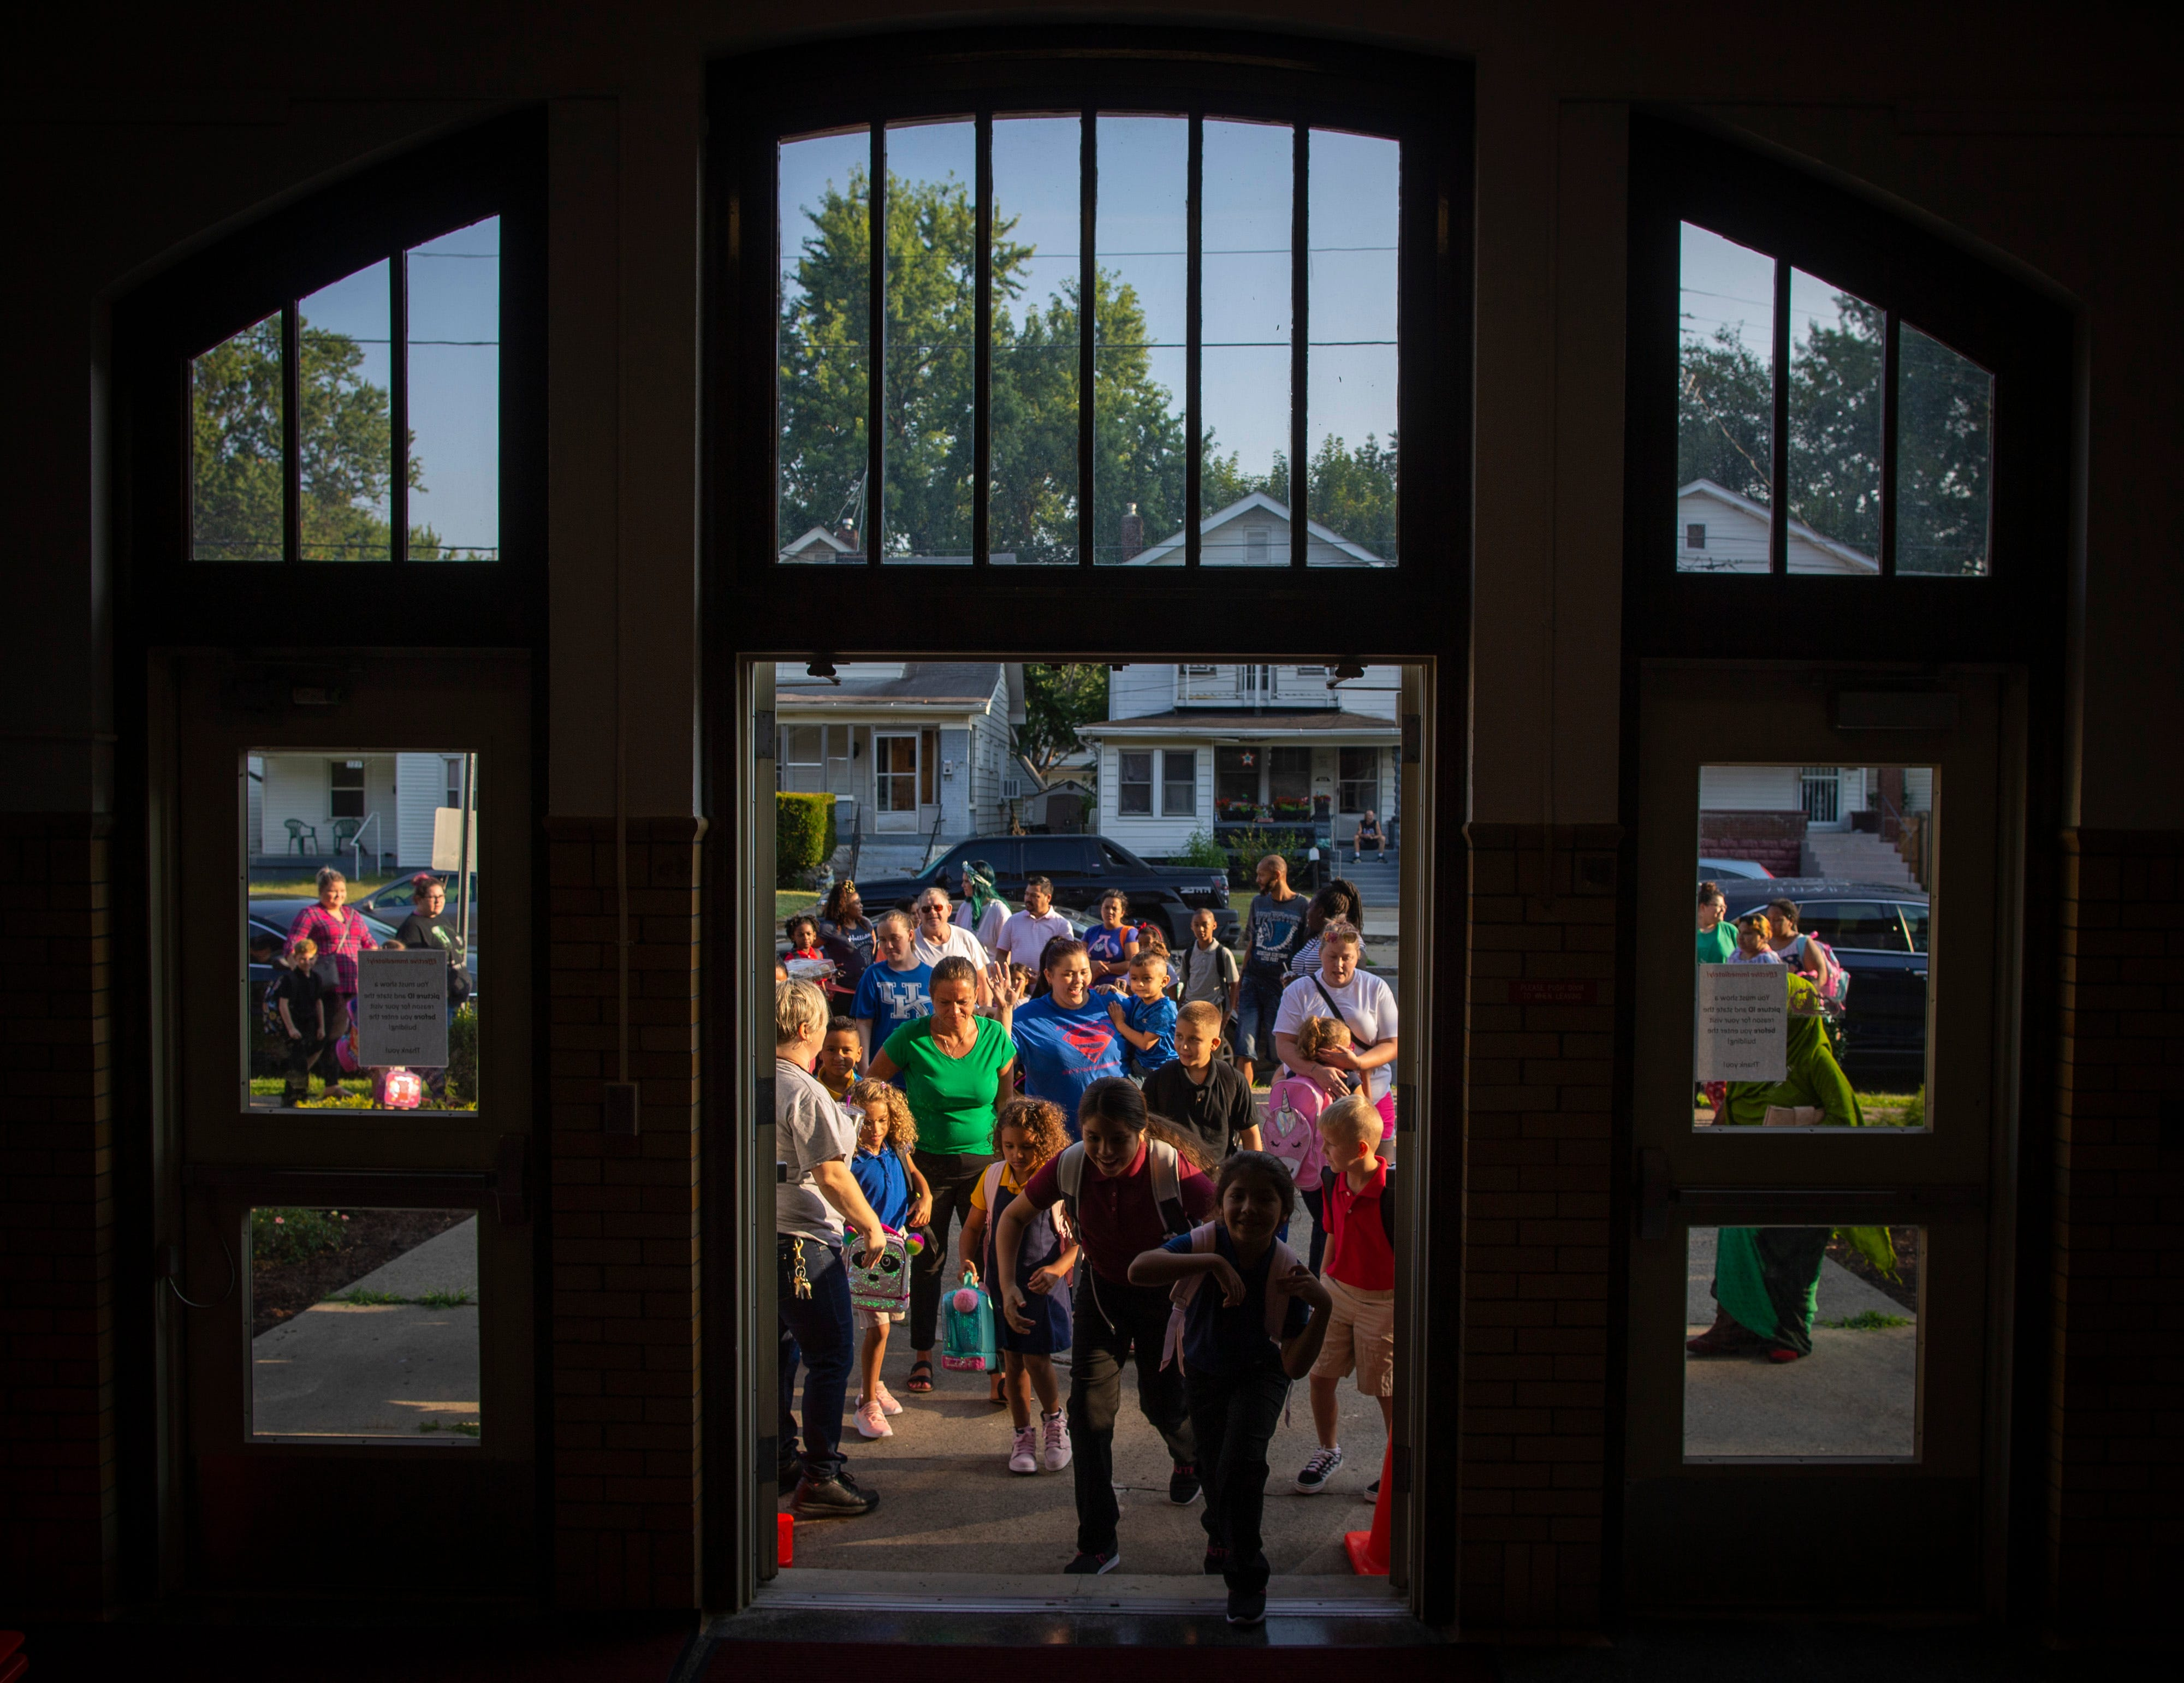 Students make their way inside Semple Elementary School, located near Churchill Downs, on the first day of school. Aug. 14, 2019